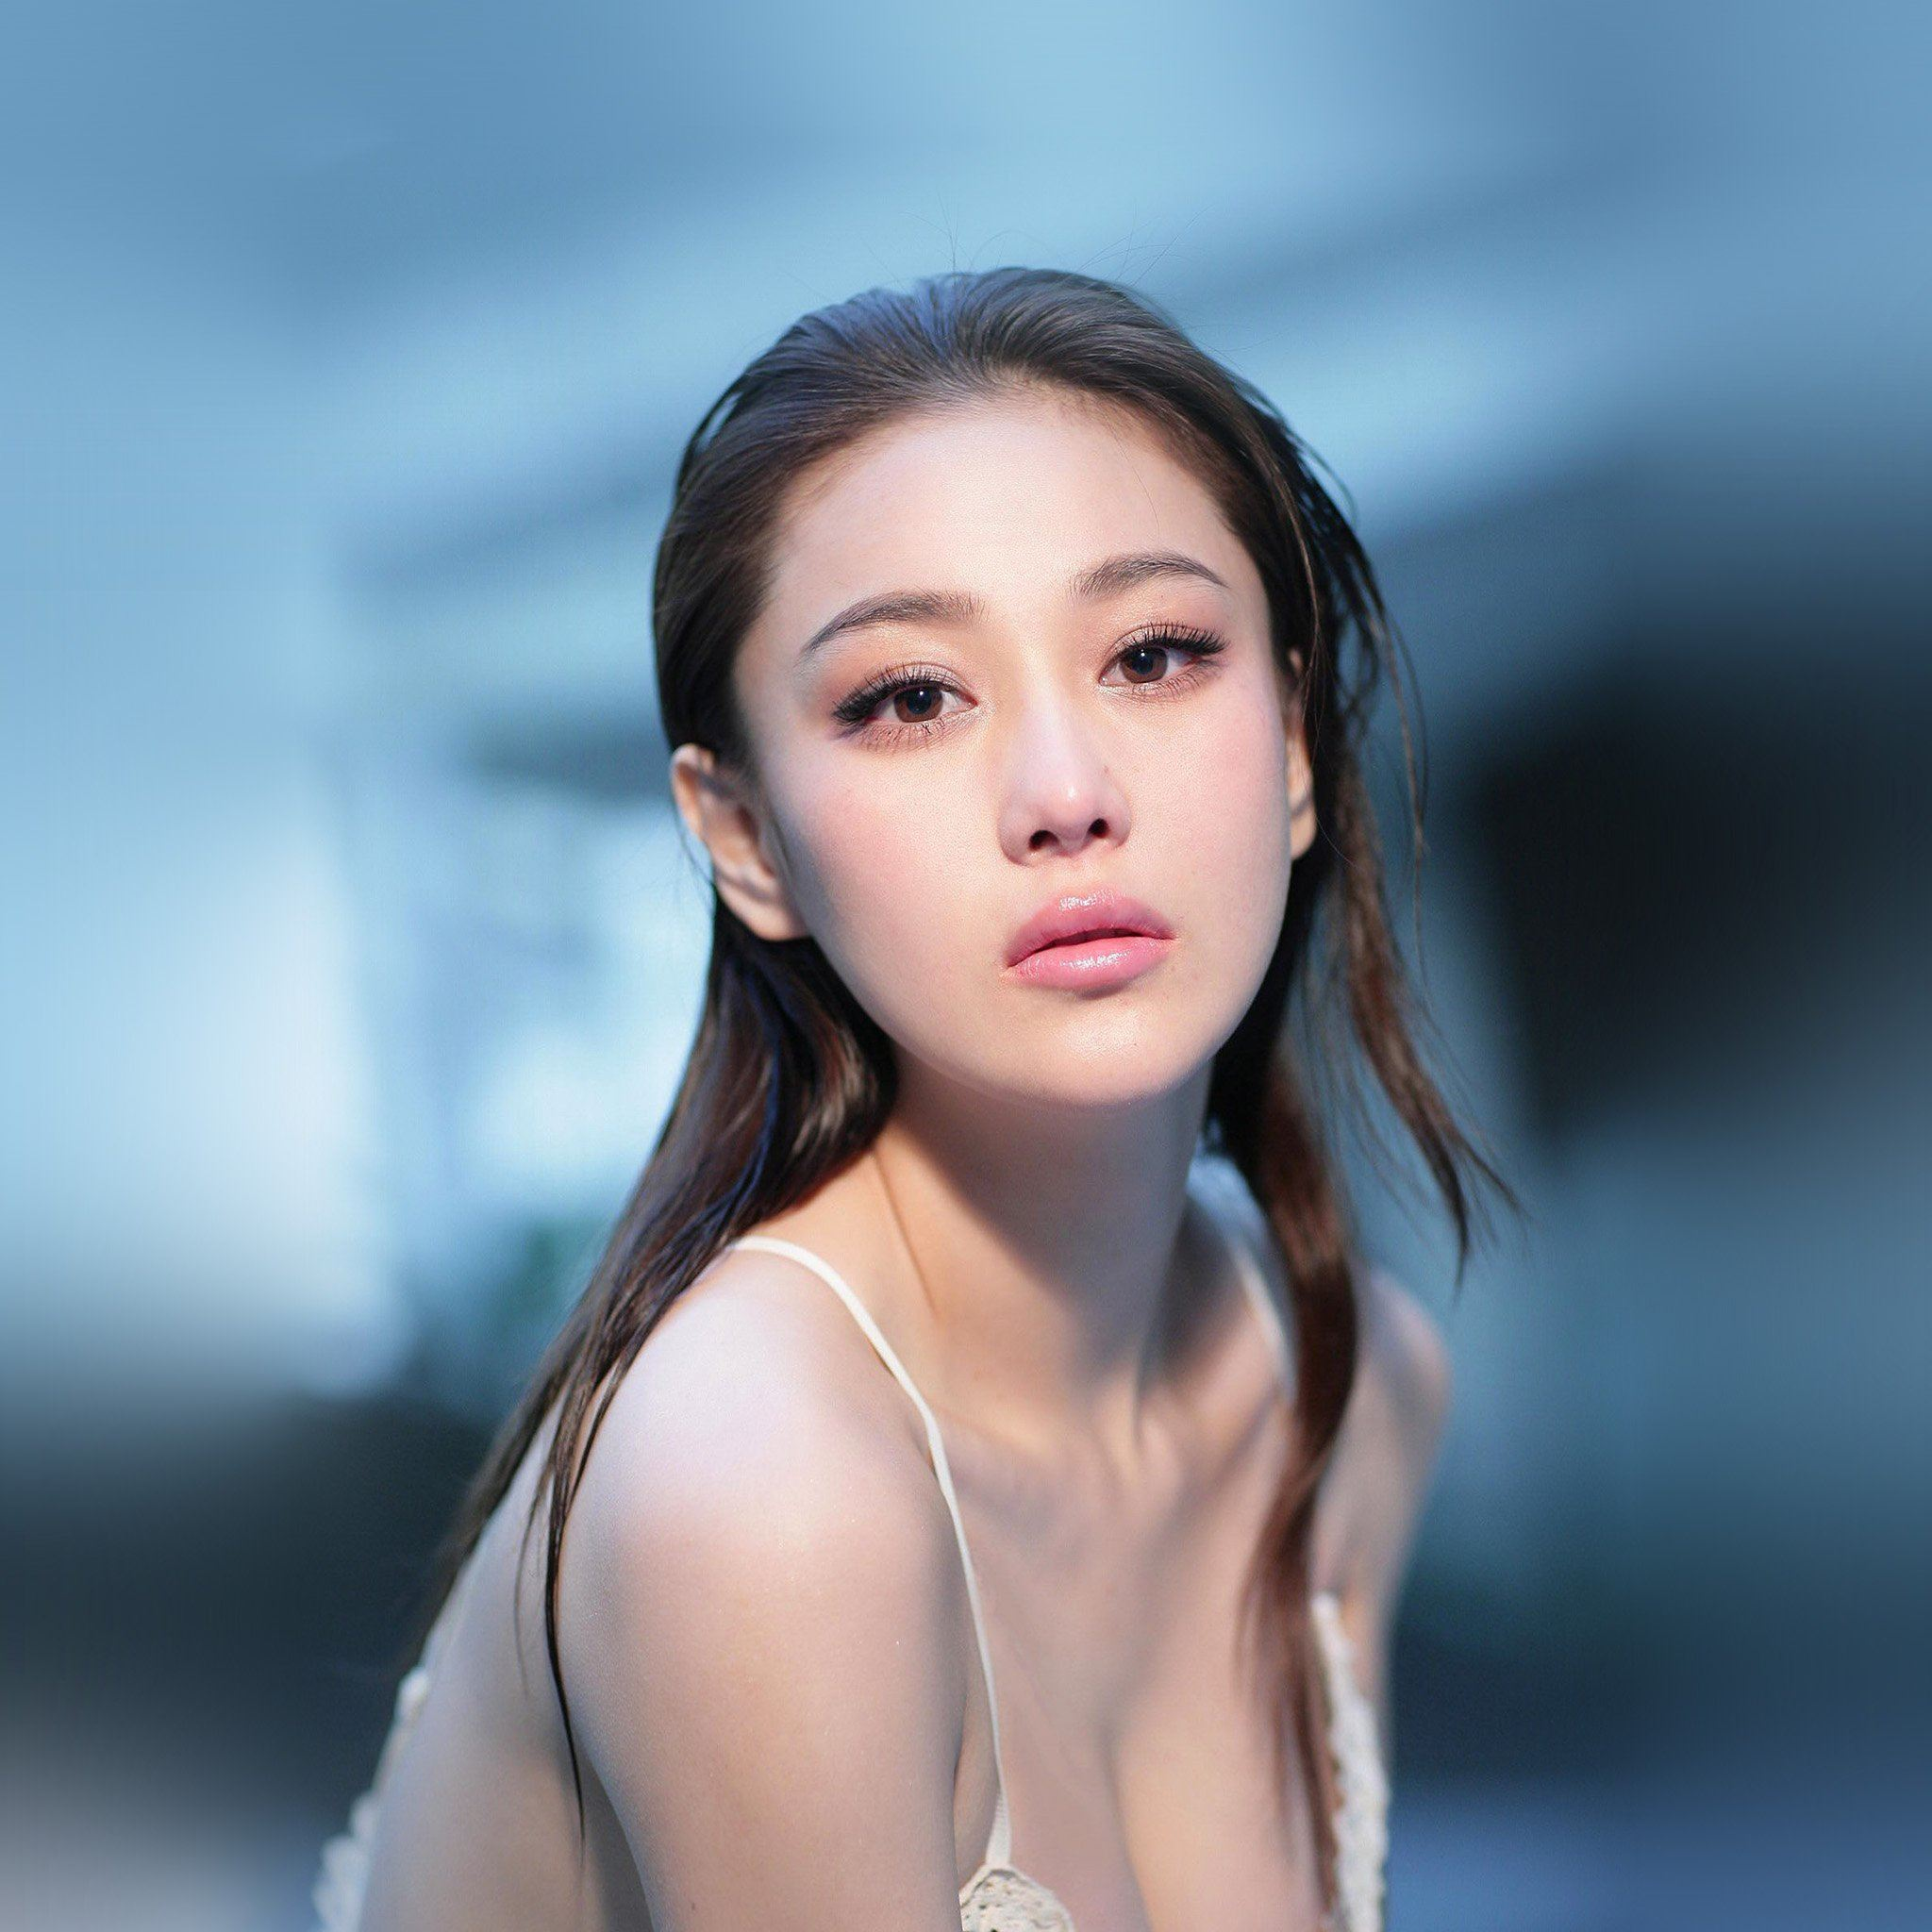 Chinese Girl Hot Model Star iPad Air wallpaper